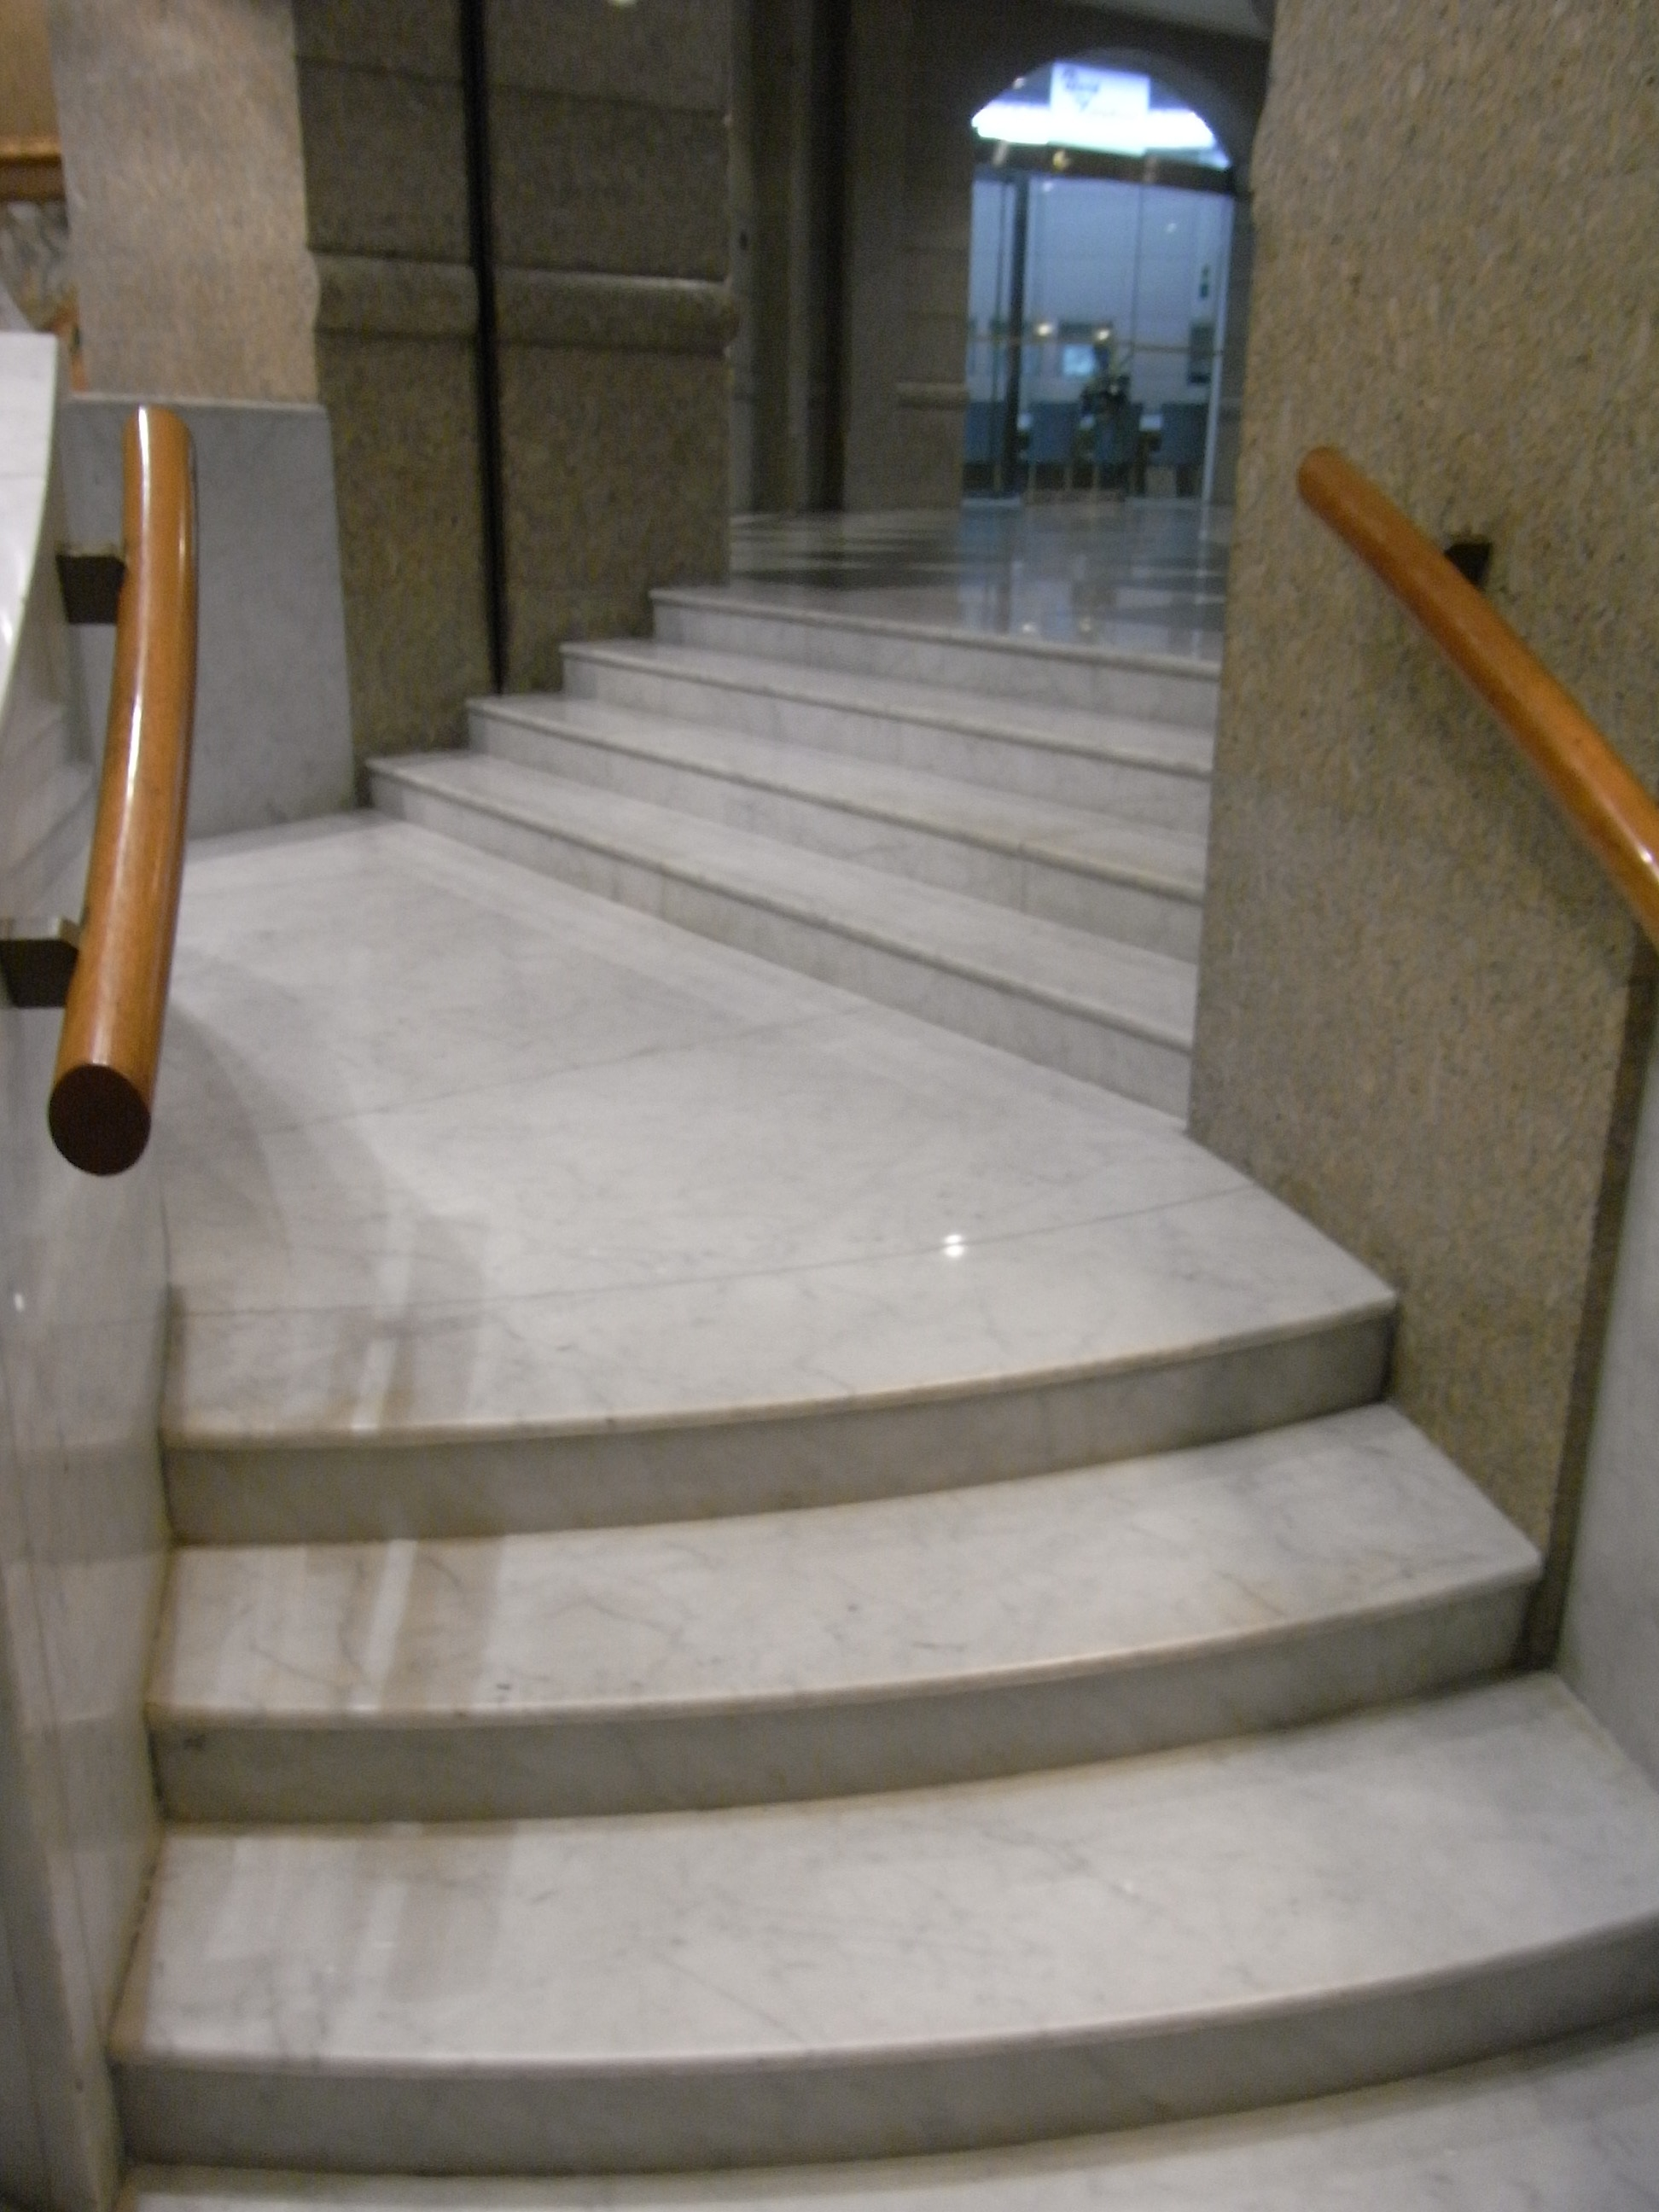 File:HK Central Night 娛樂行 Entertainment Building Interior 01 White Marble  Stairs Aug  Idea